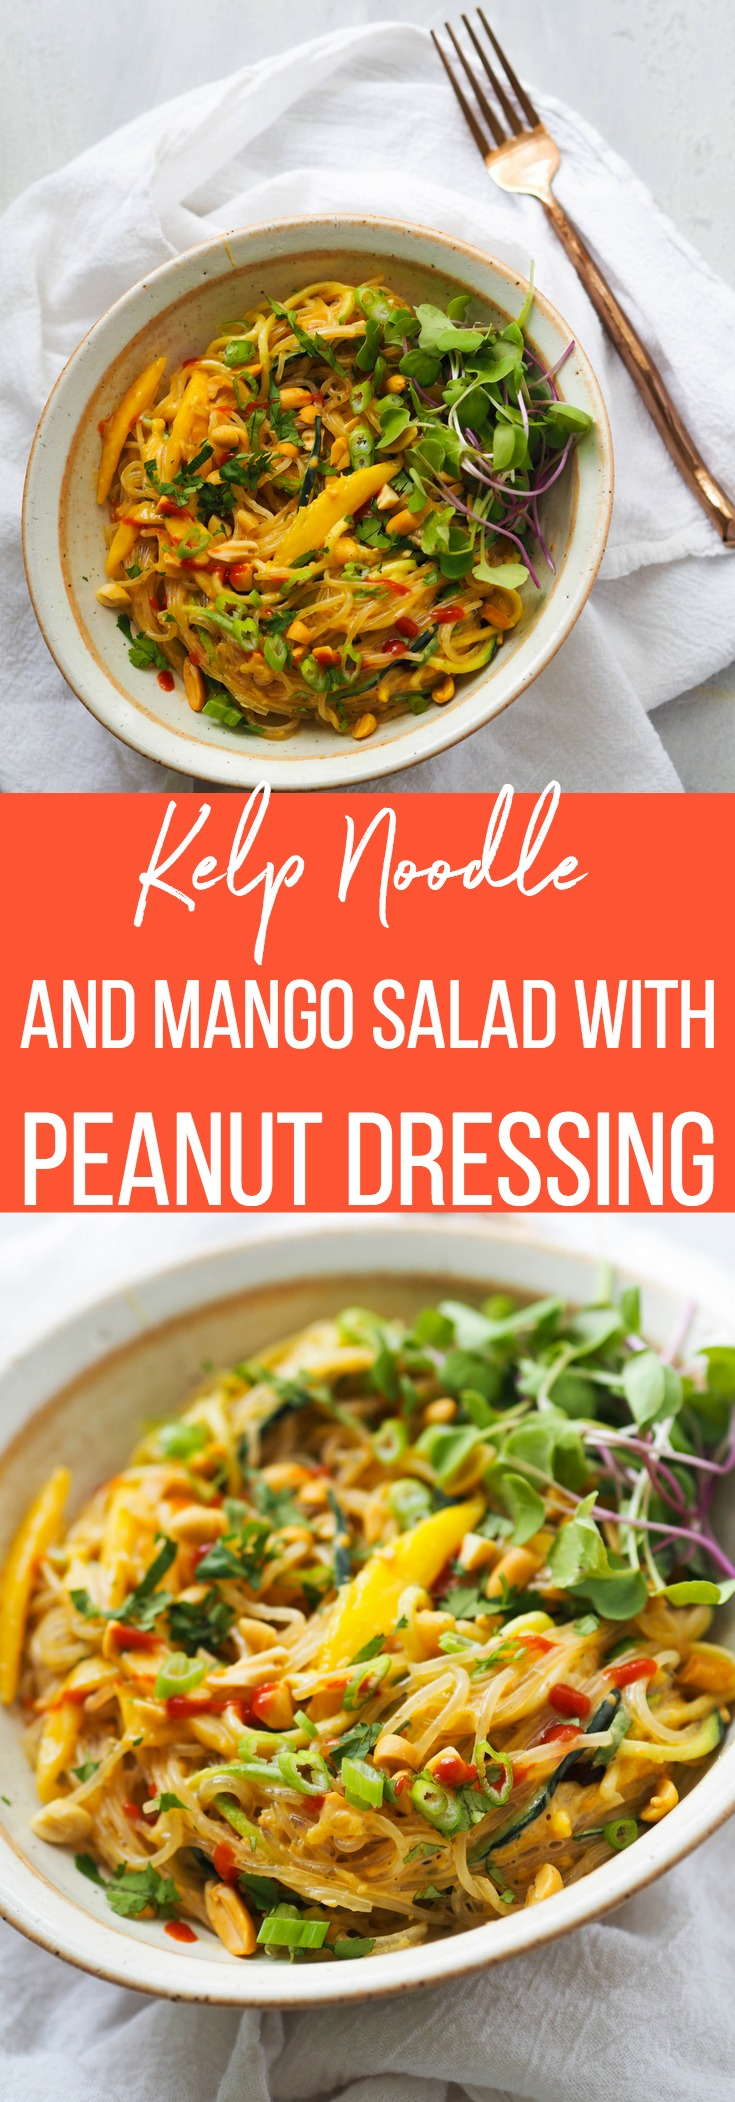 Make this kelp noodle and mango salad with peanut dressing for a perfect little light lunch! Bulk it up with grilled chicken or tofu to add more protein! If you've never tried kelp noodles, you'll love their slightly chewy texture and how they soak up the yummy peanut sauce! #noodle #salad #lunch #glutenfree #vegan